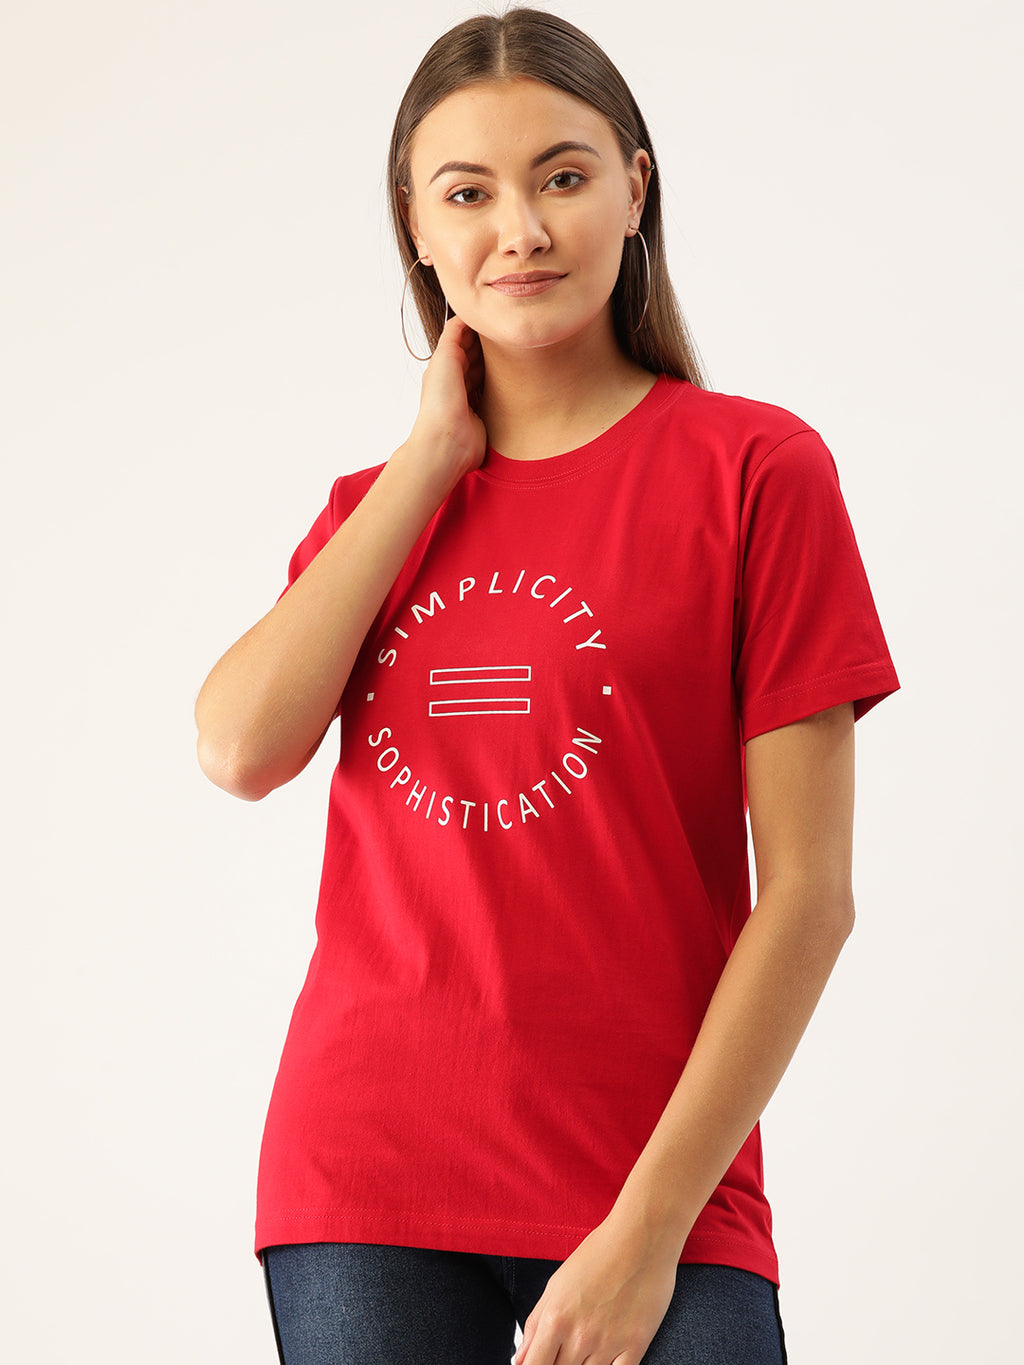 Simplicity is Sophistication Women Red T-Shirt - YOLOCLAN